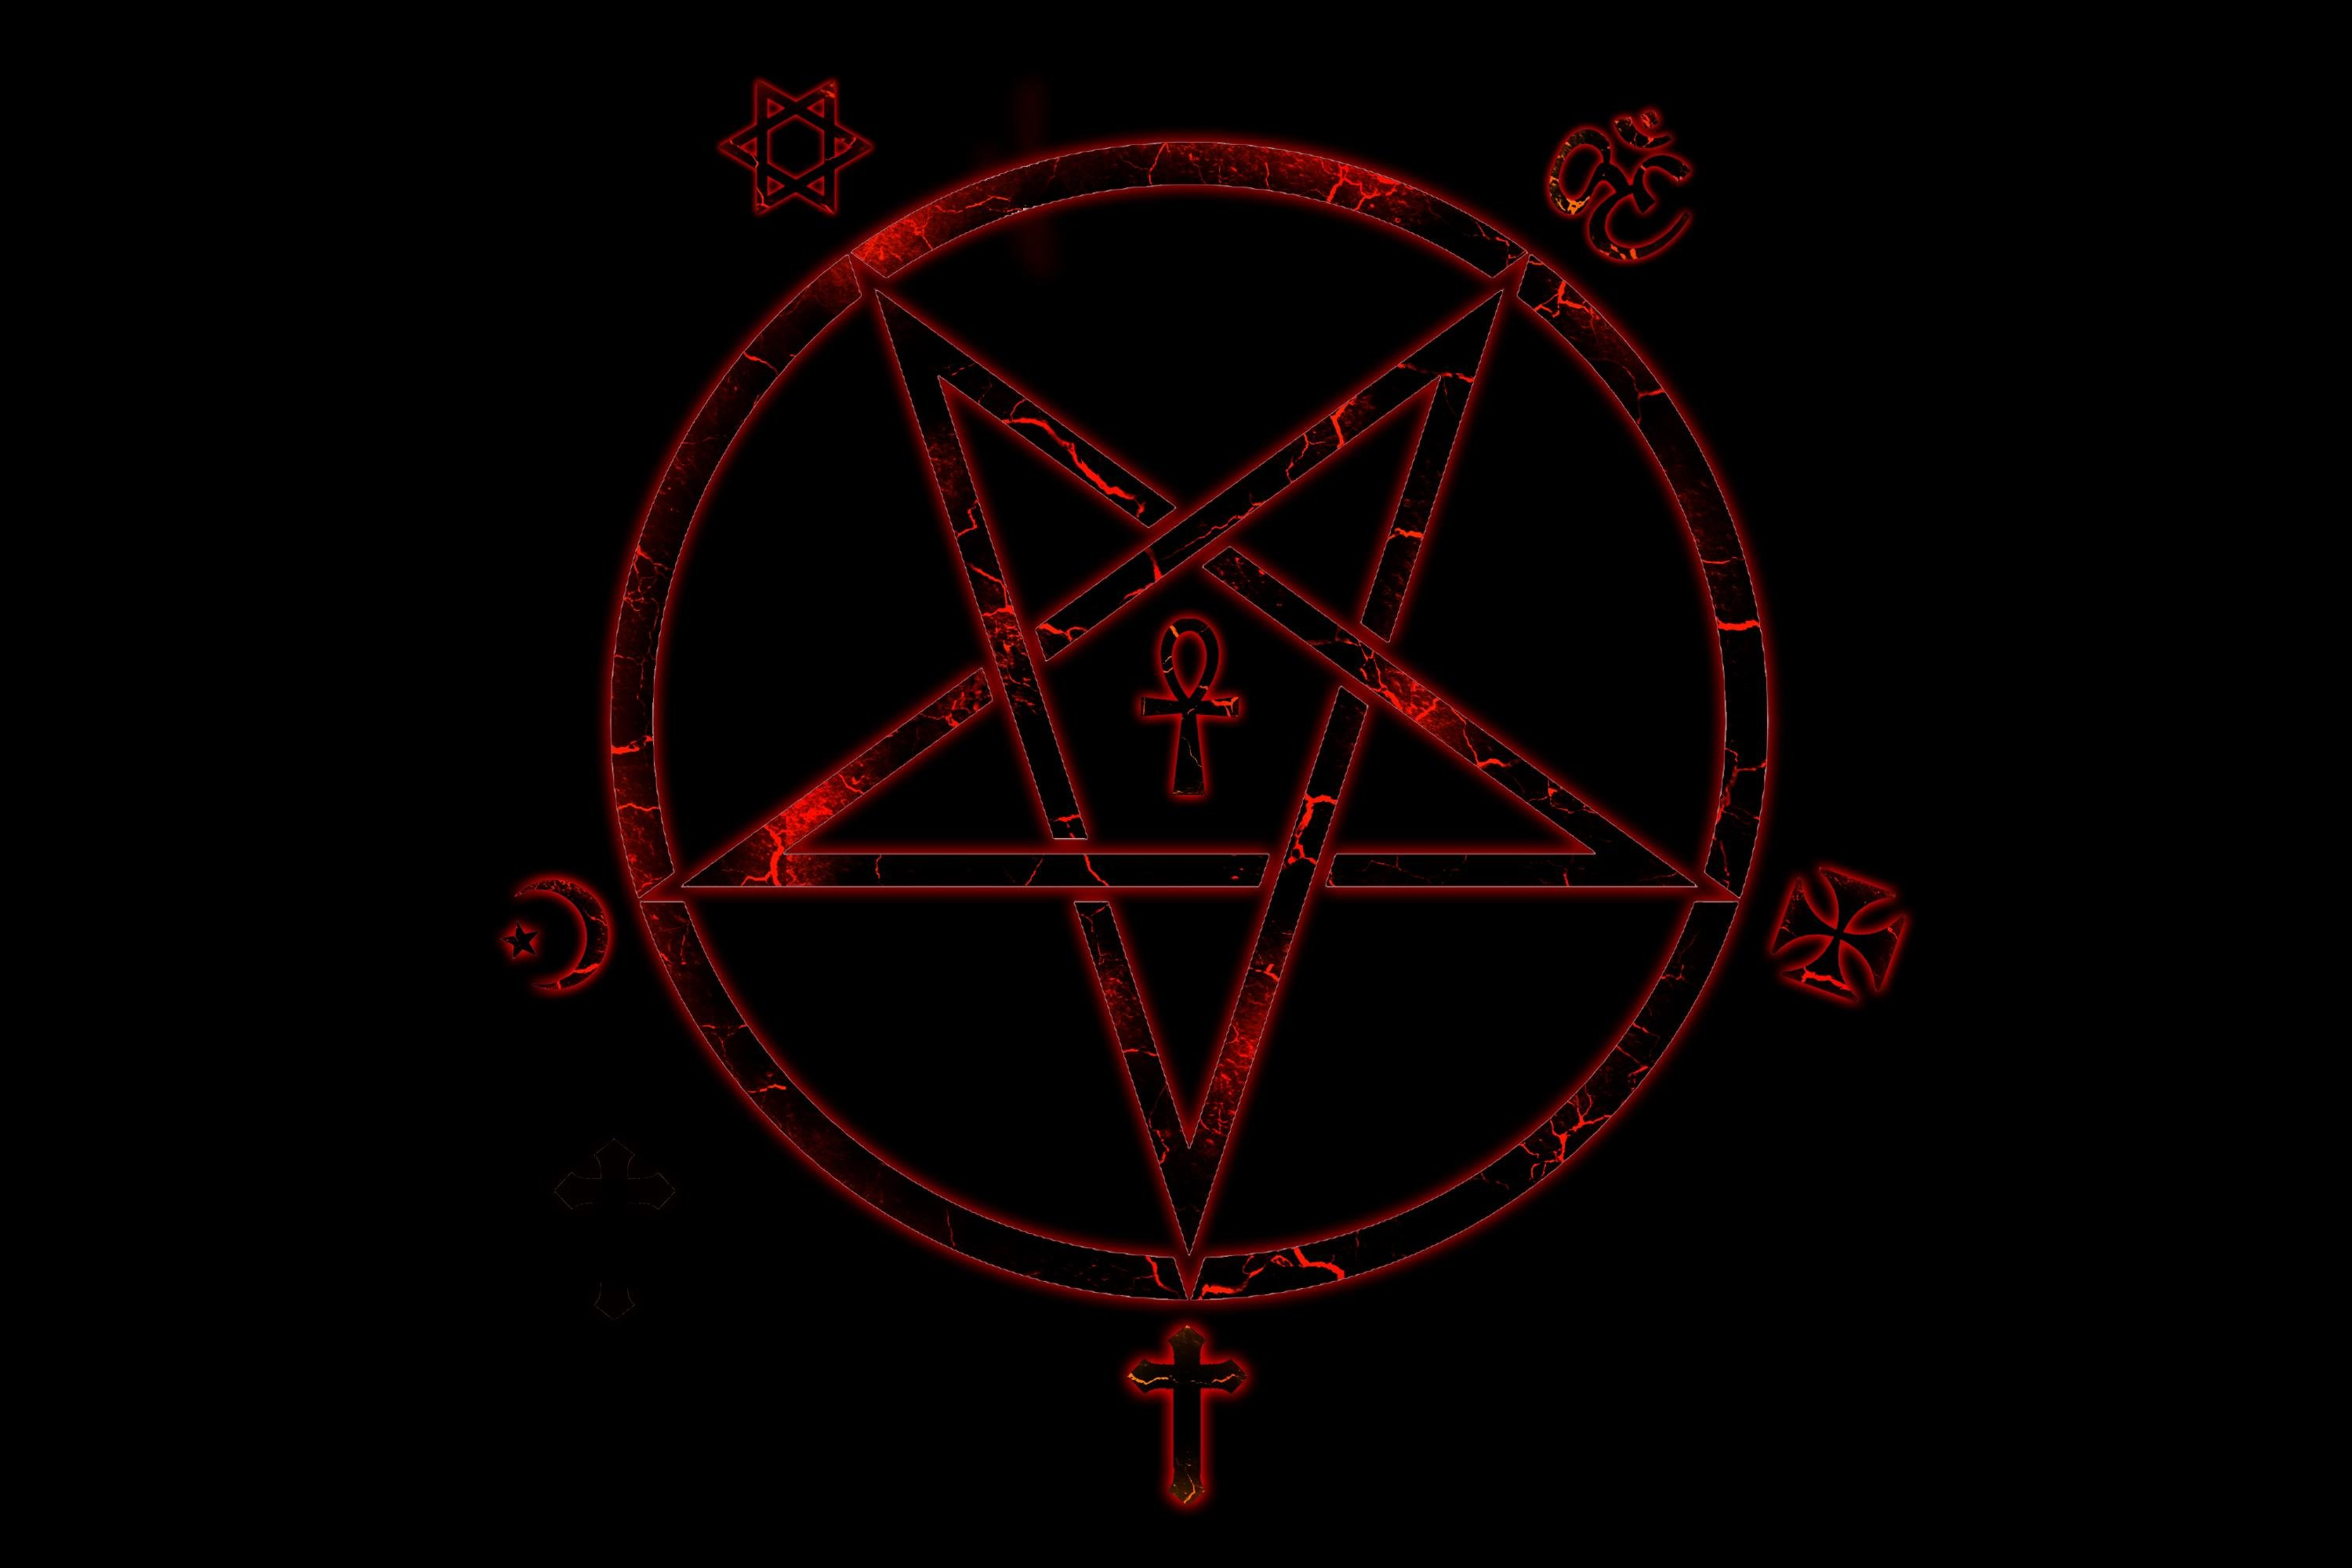 dark horror evil occult satan satanic creepy wallpaper 3000x2000